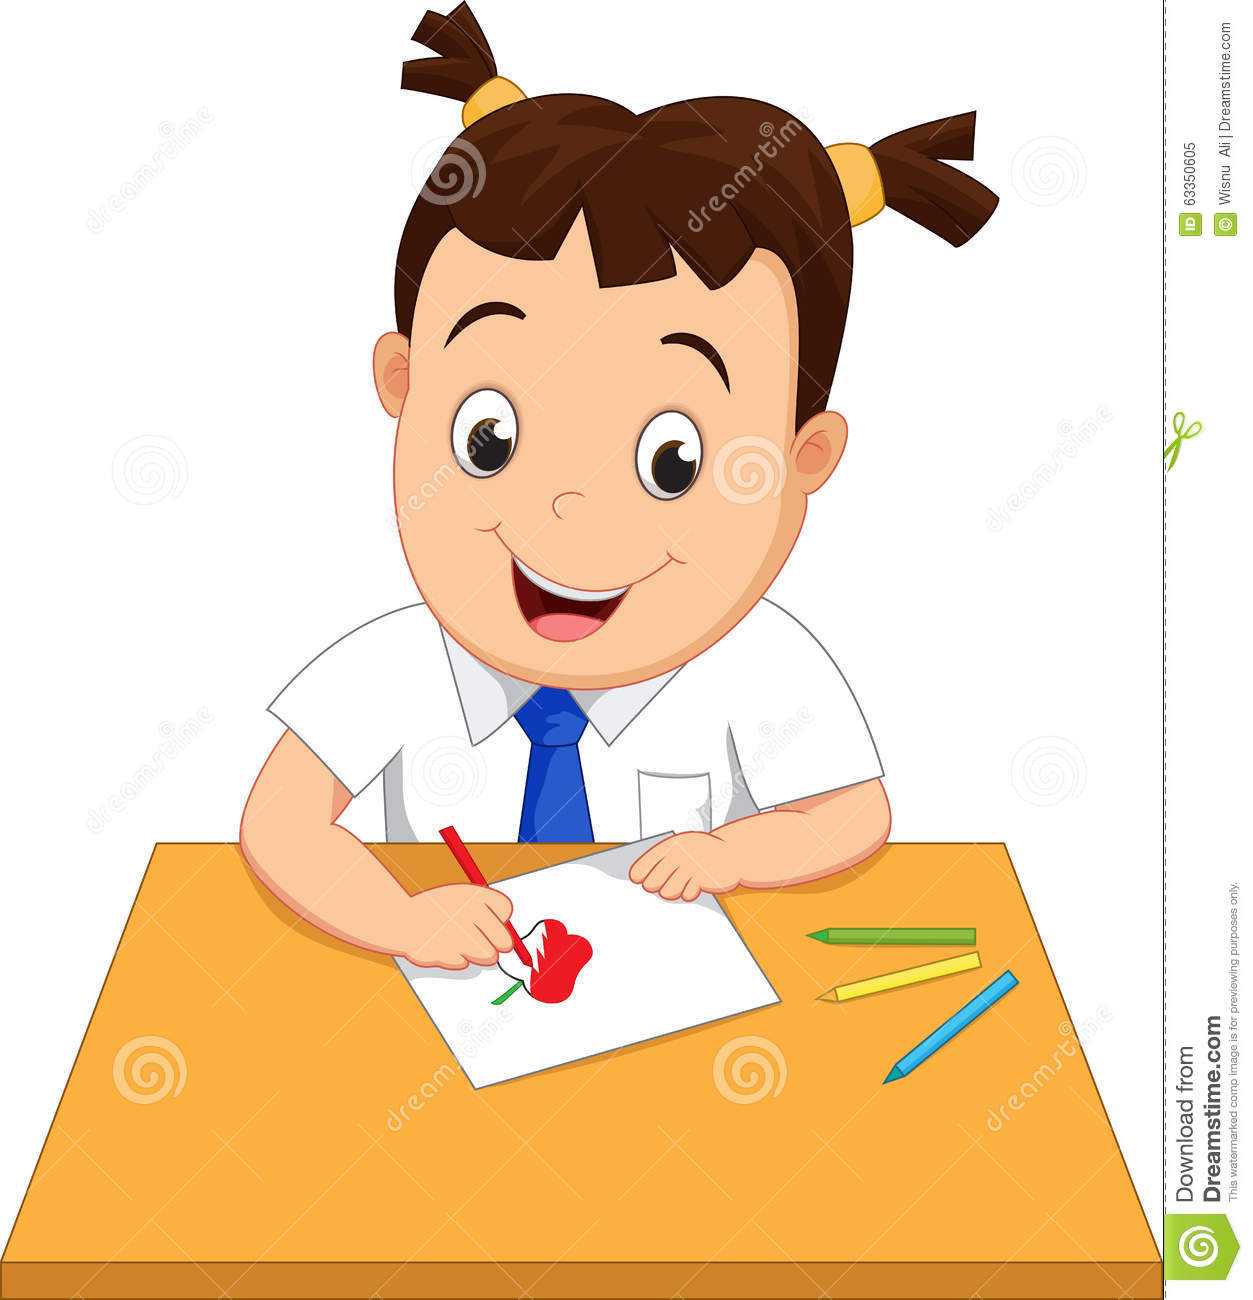 Happy School Girl Making A Drawing On A Paper Stock Vector - Image ...